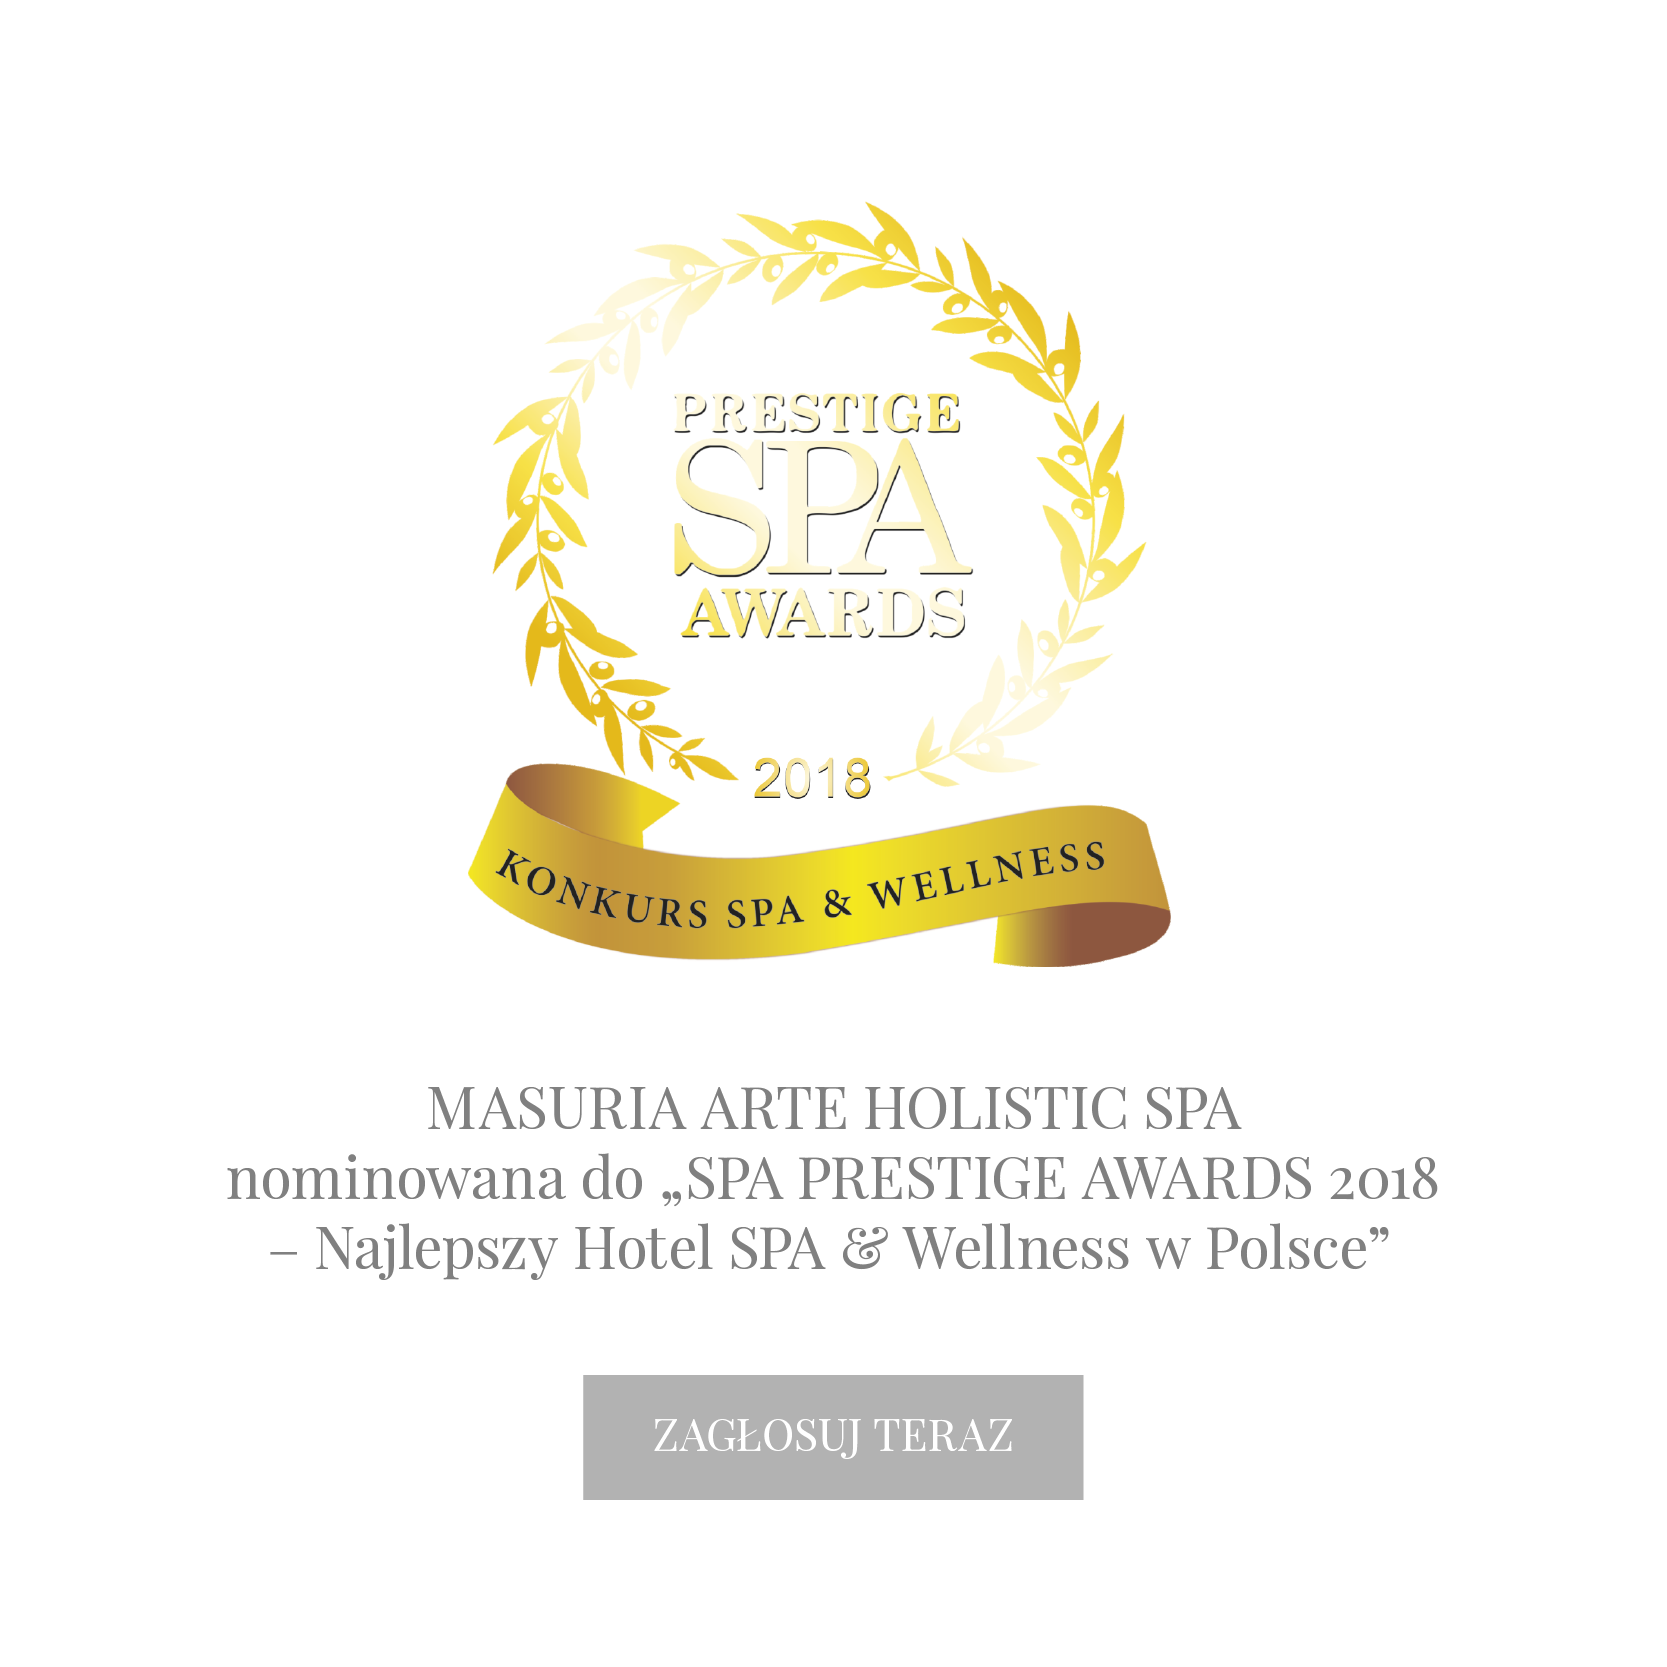 SPA PRESTIGE AWARDS